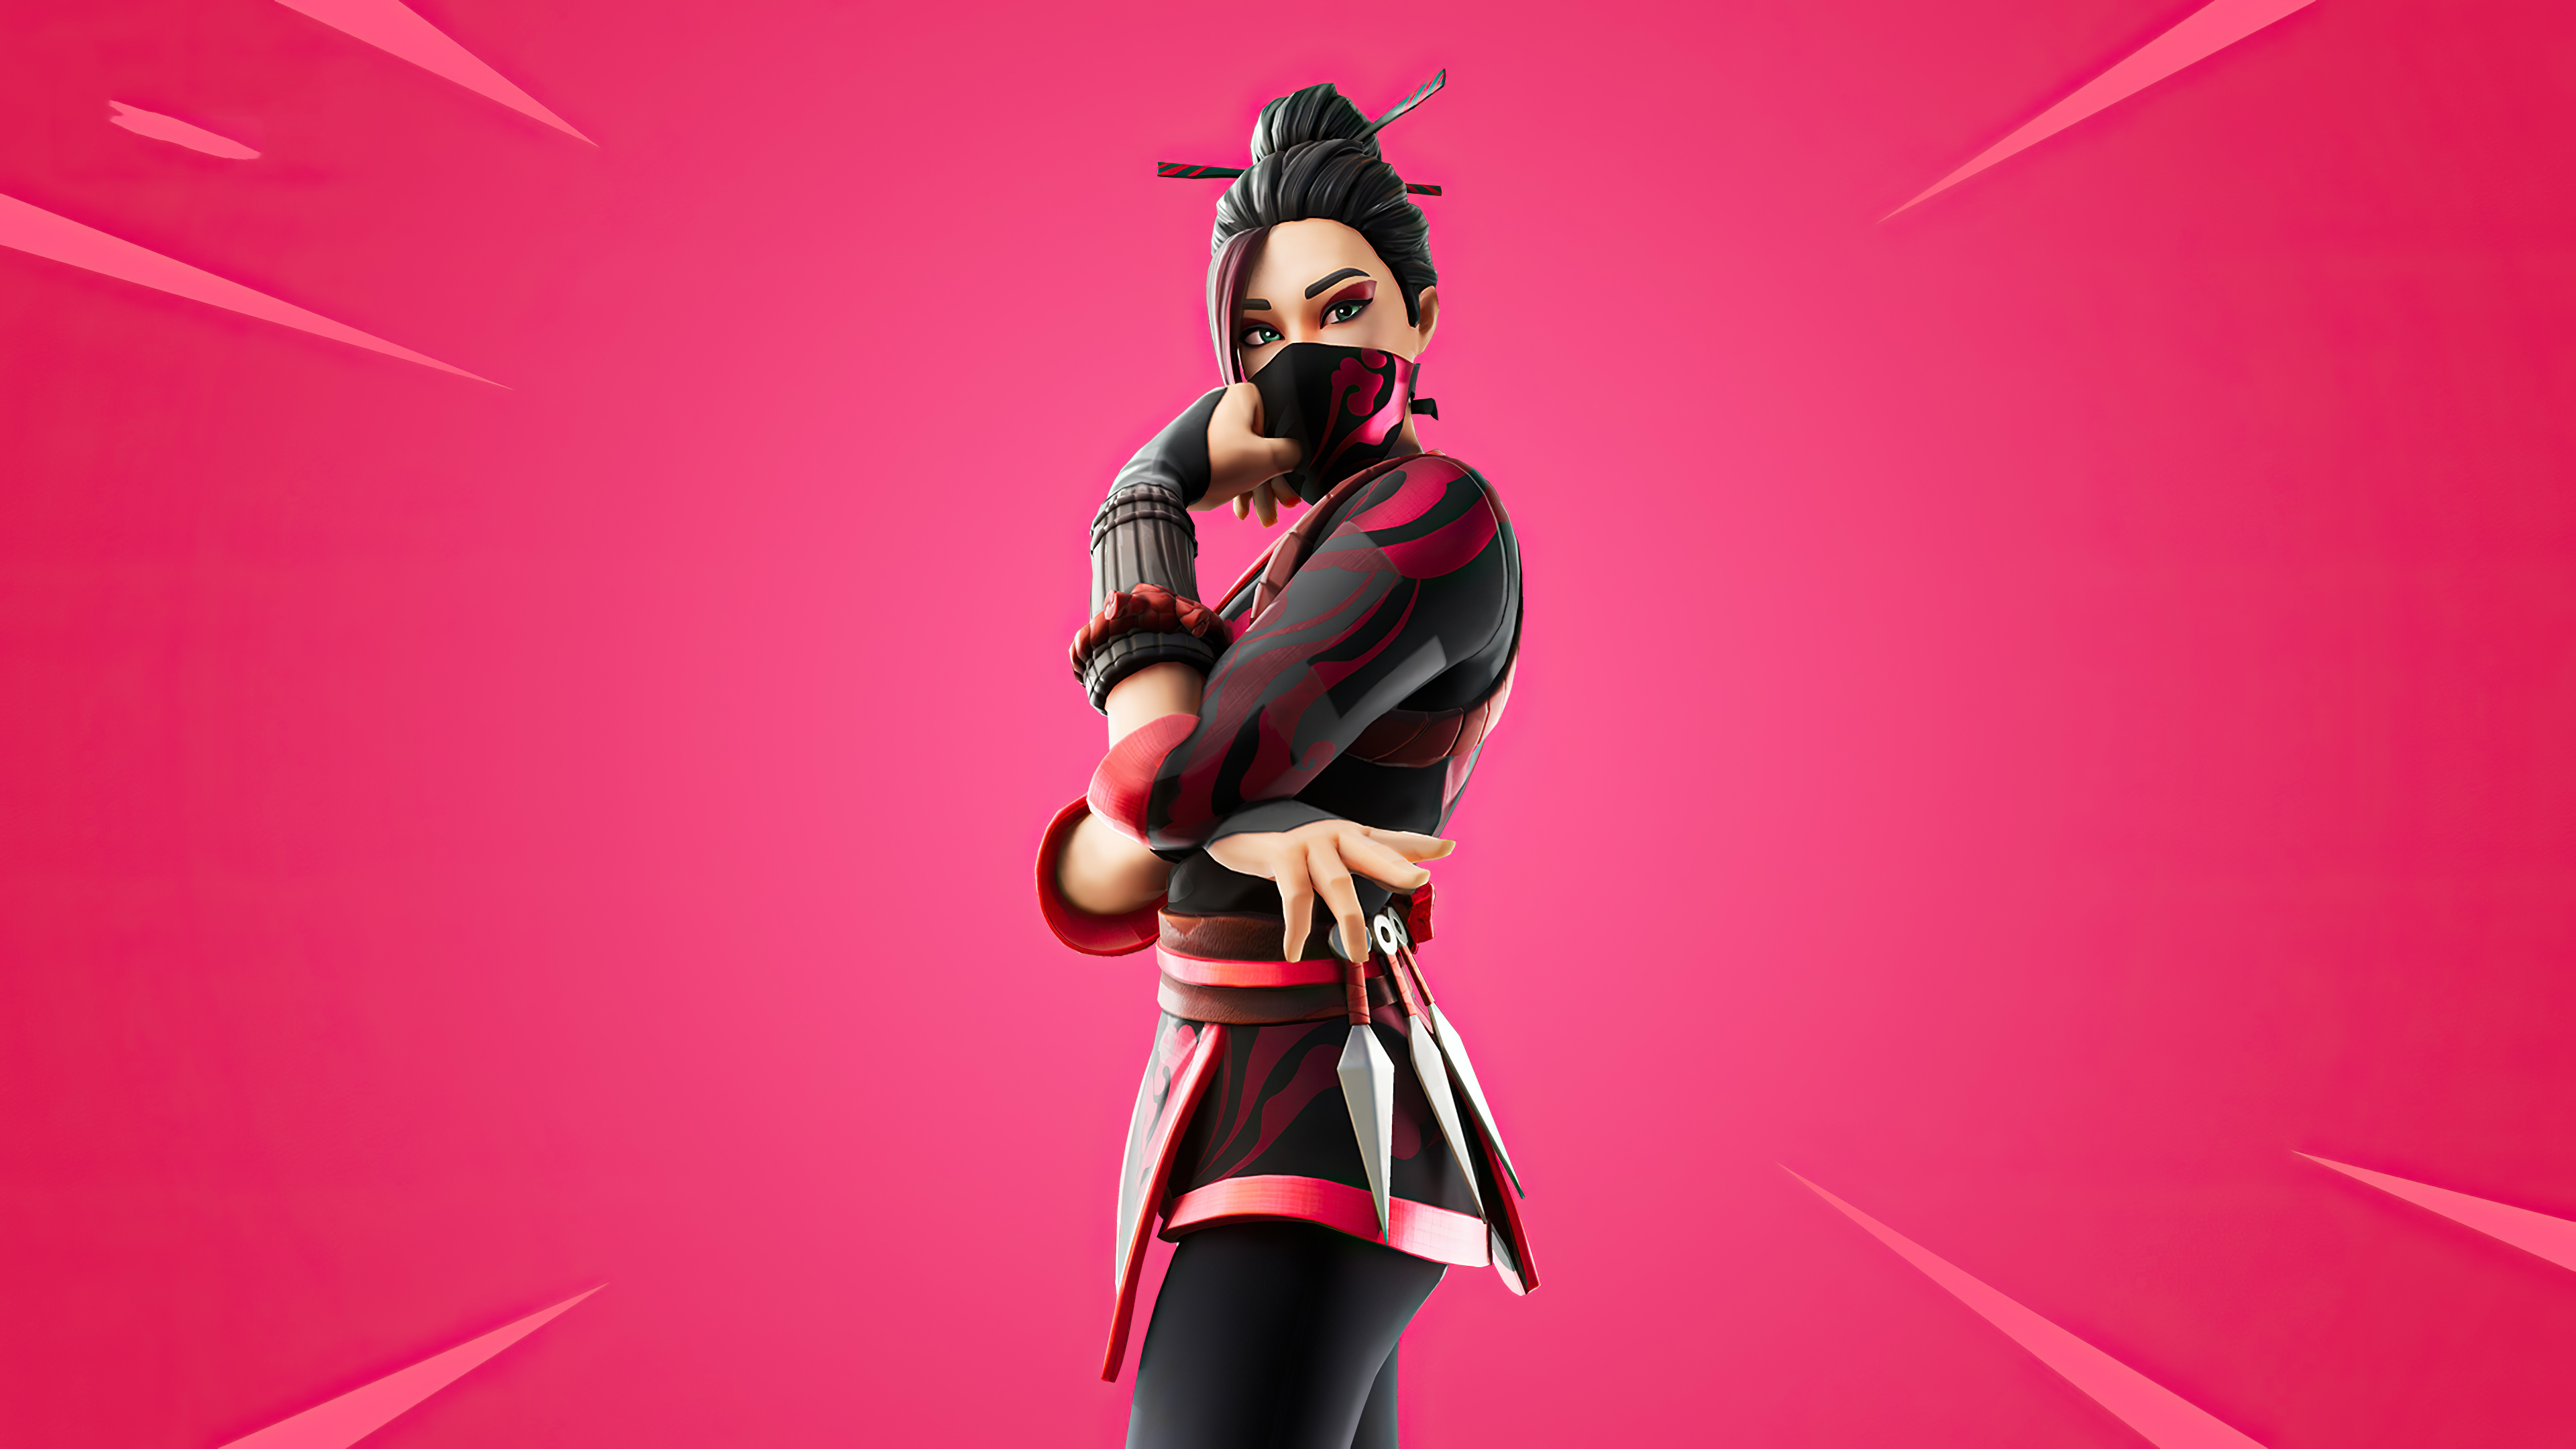 Fortnite Red Jade Outfit 4k Hd Games 4k Wallpapers Images Backgrounds Photos And Pictures